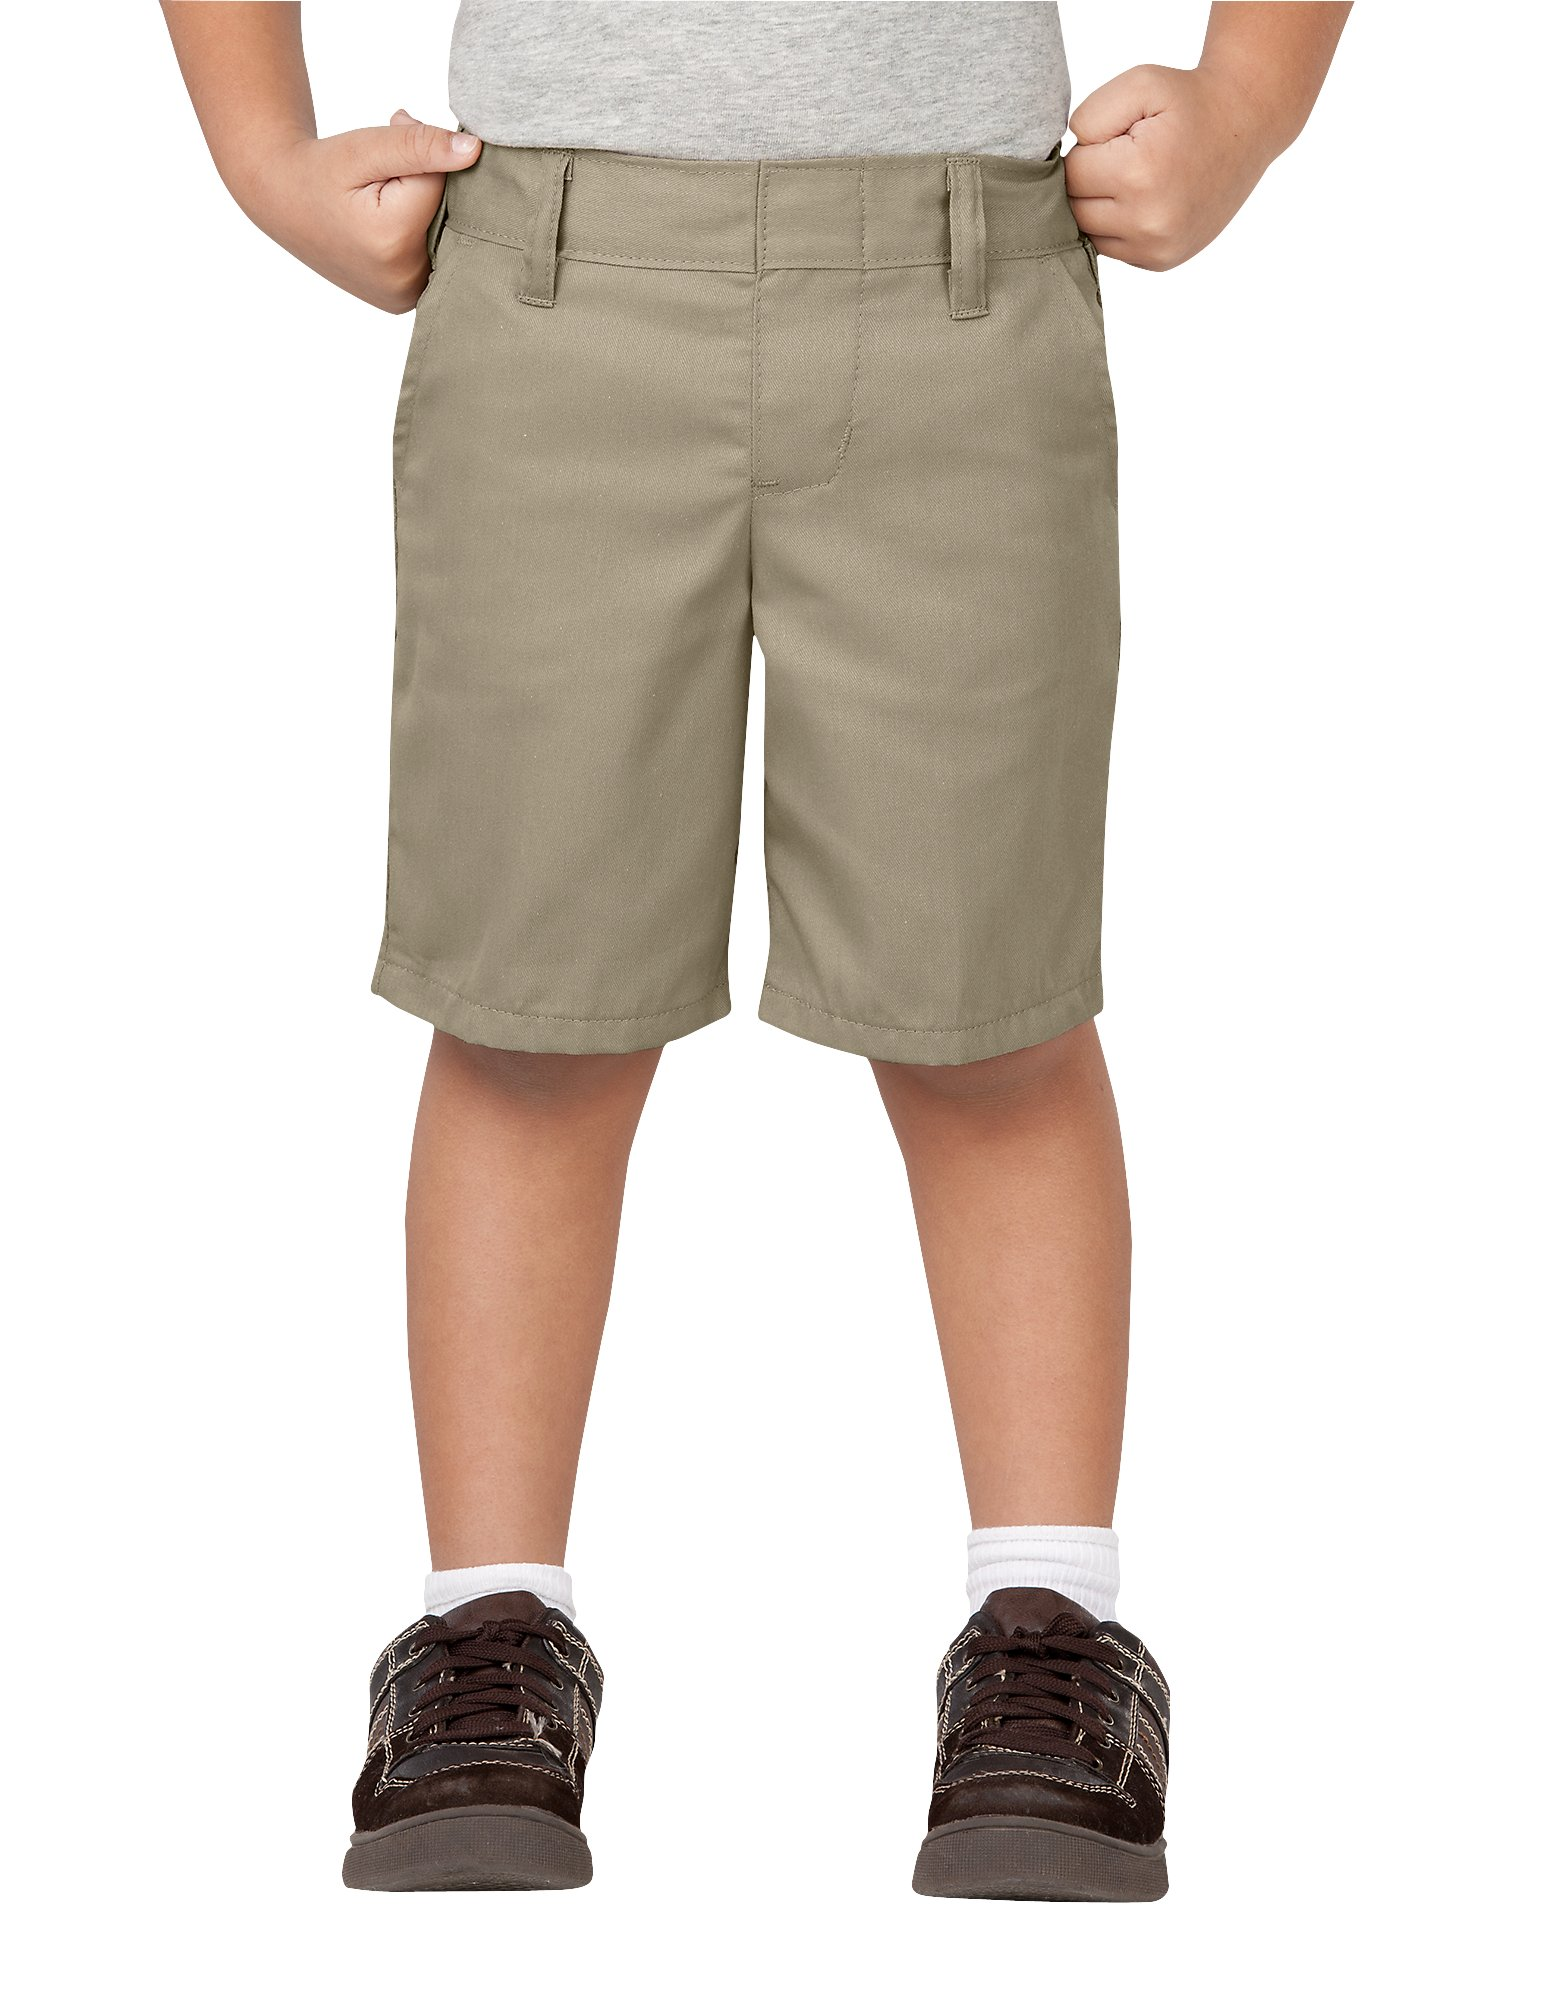 Toddler Classic Fit Unisex Pull-on Shorts - Military Khaki (KH)